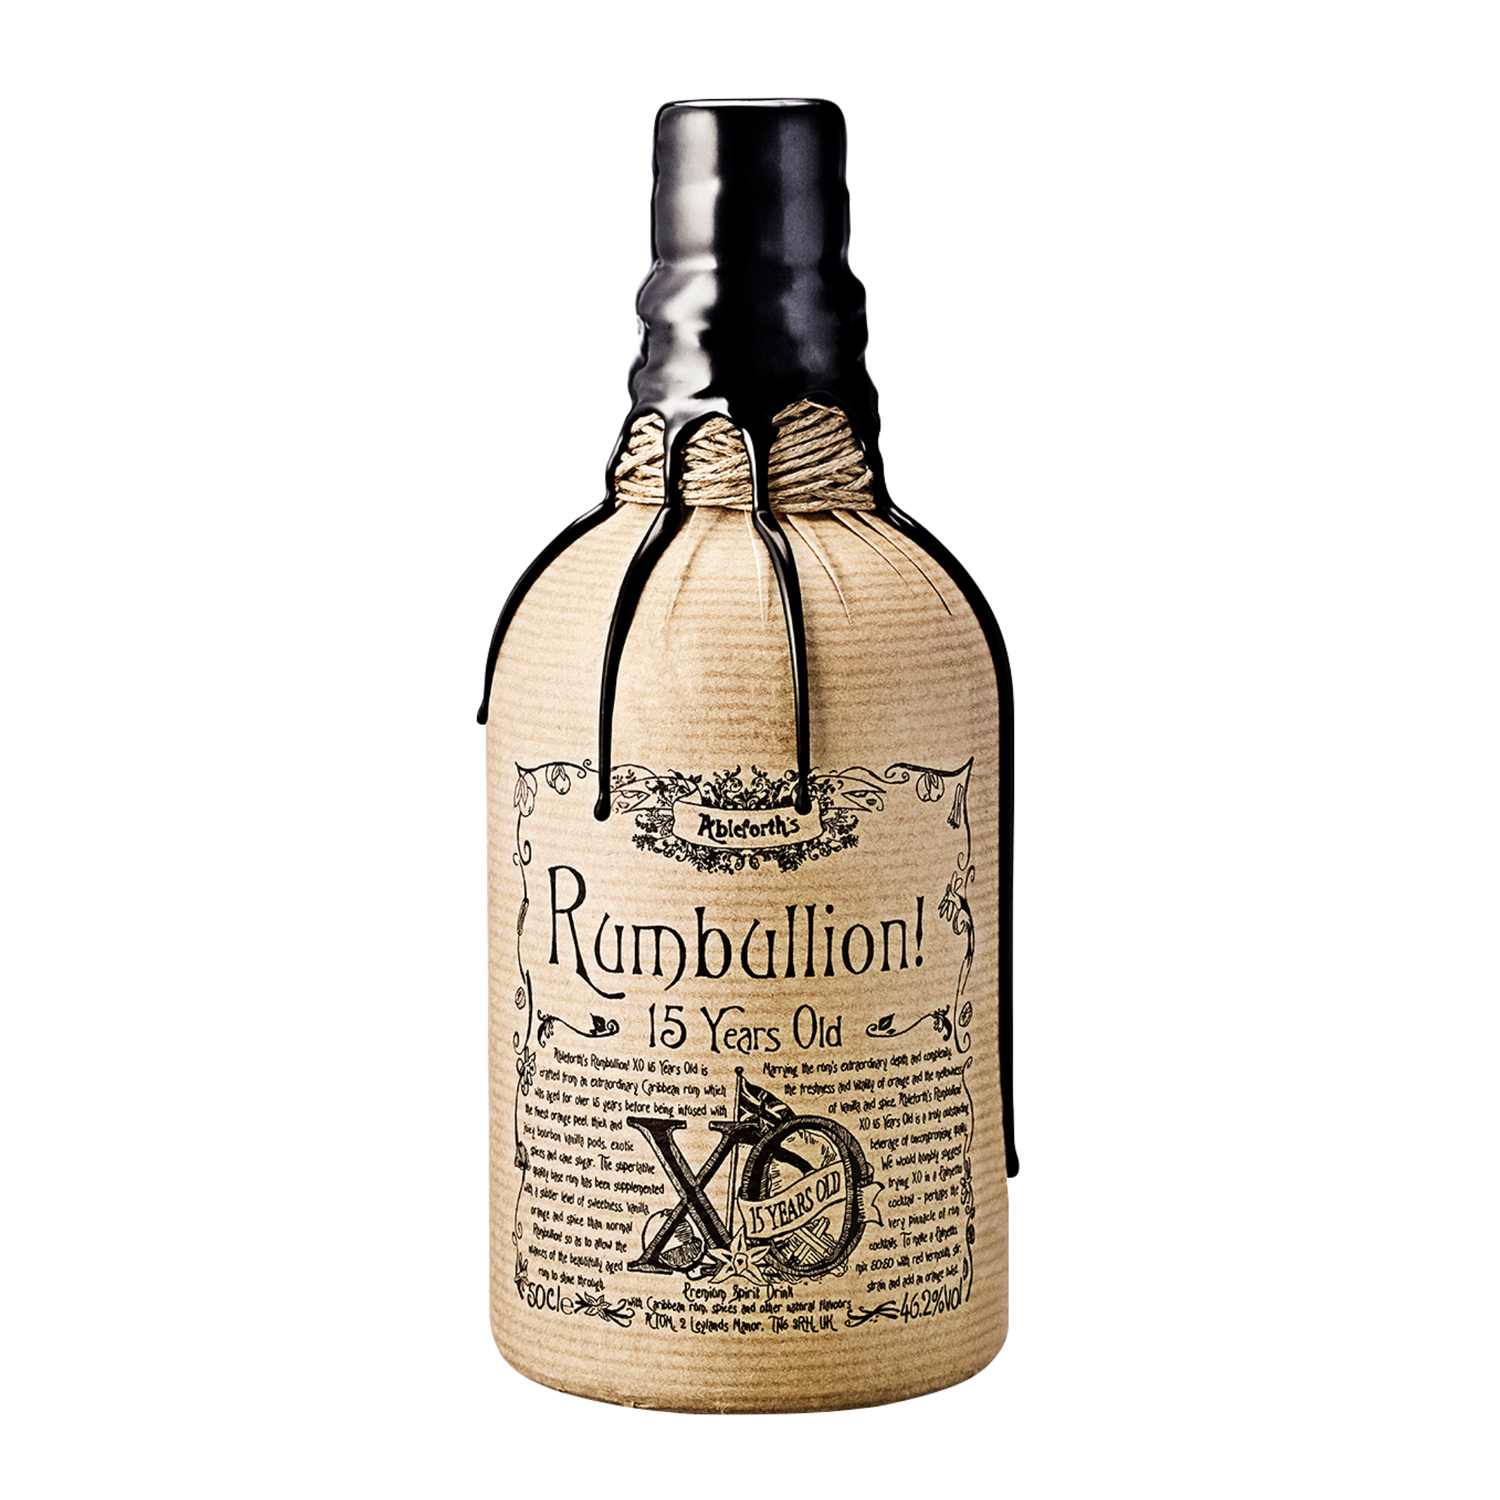 Rumbullion XO 15yr Old Rum